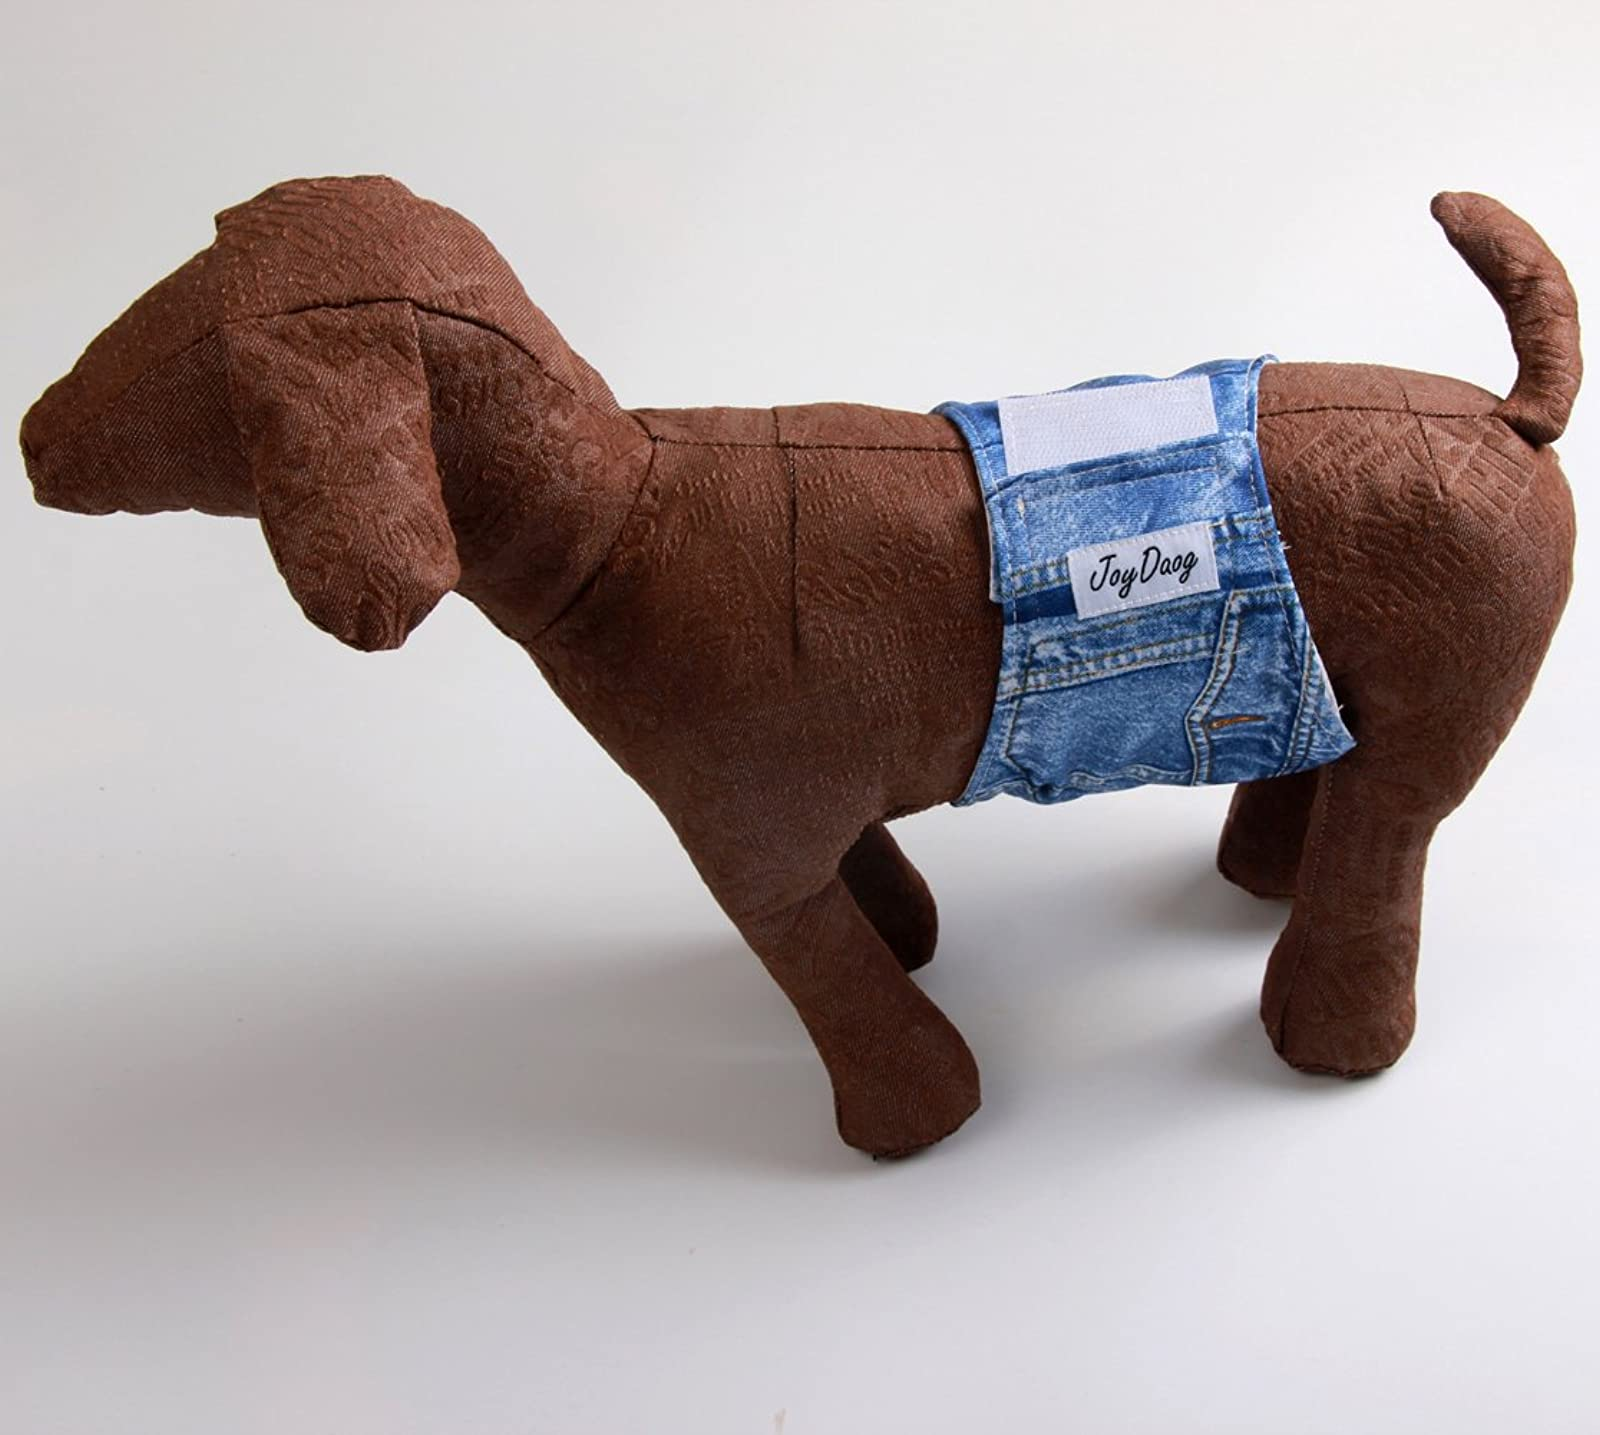 JoyDaog Jean Belly BandsSmall Dog Diapers Male - 5